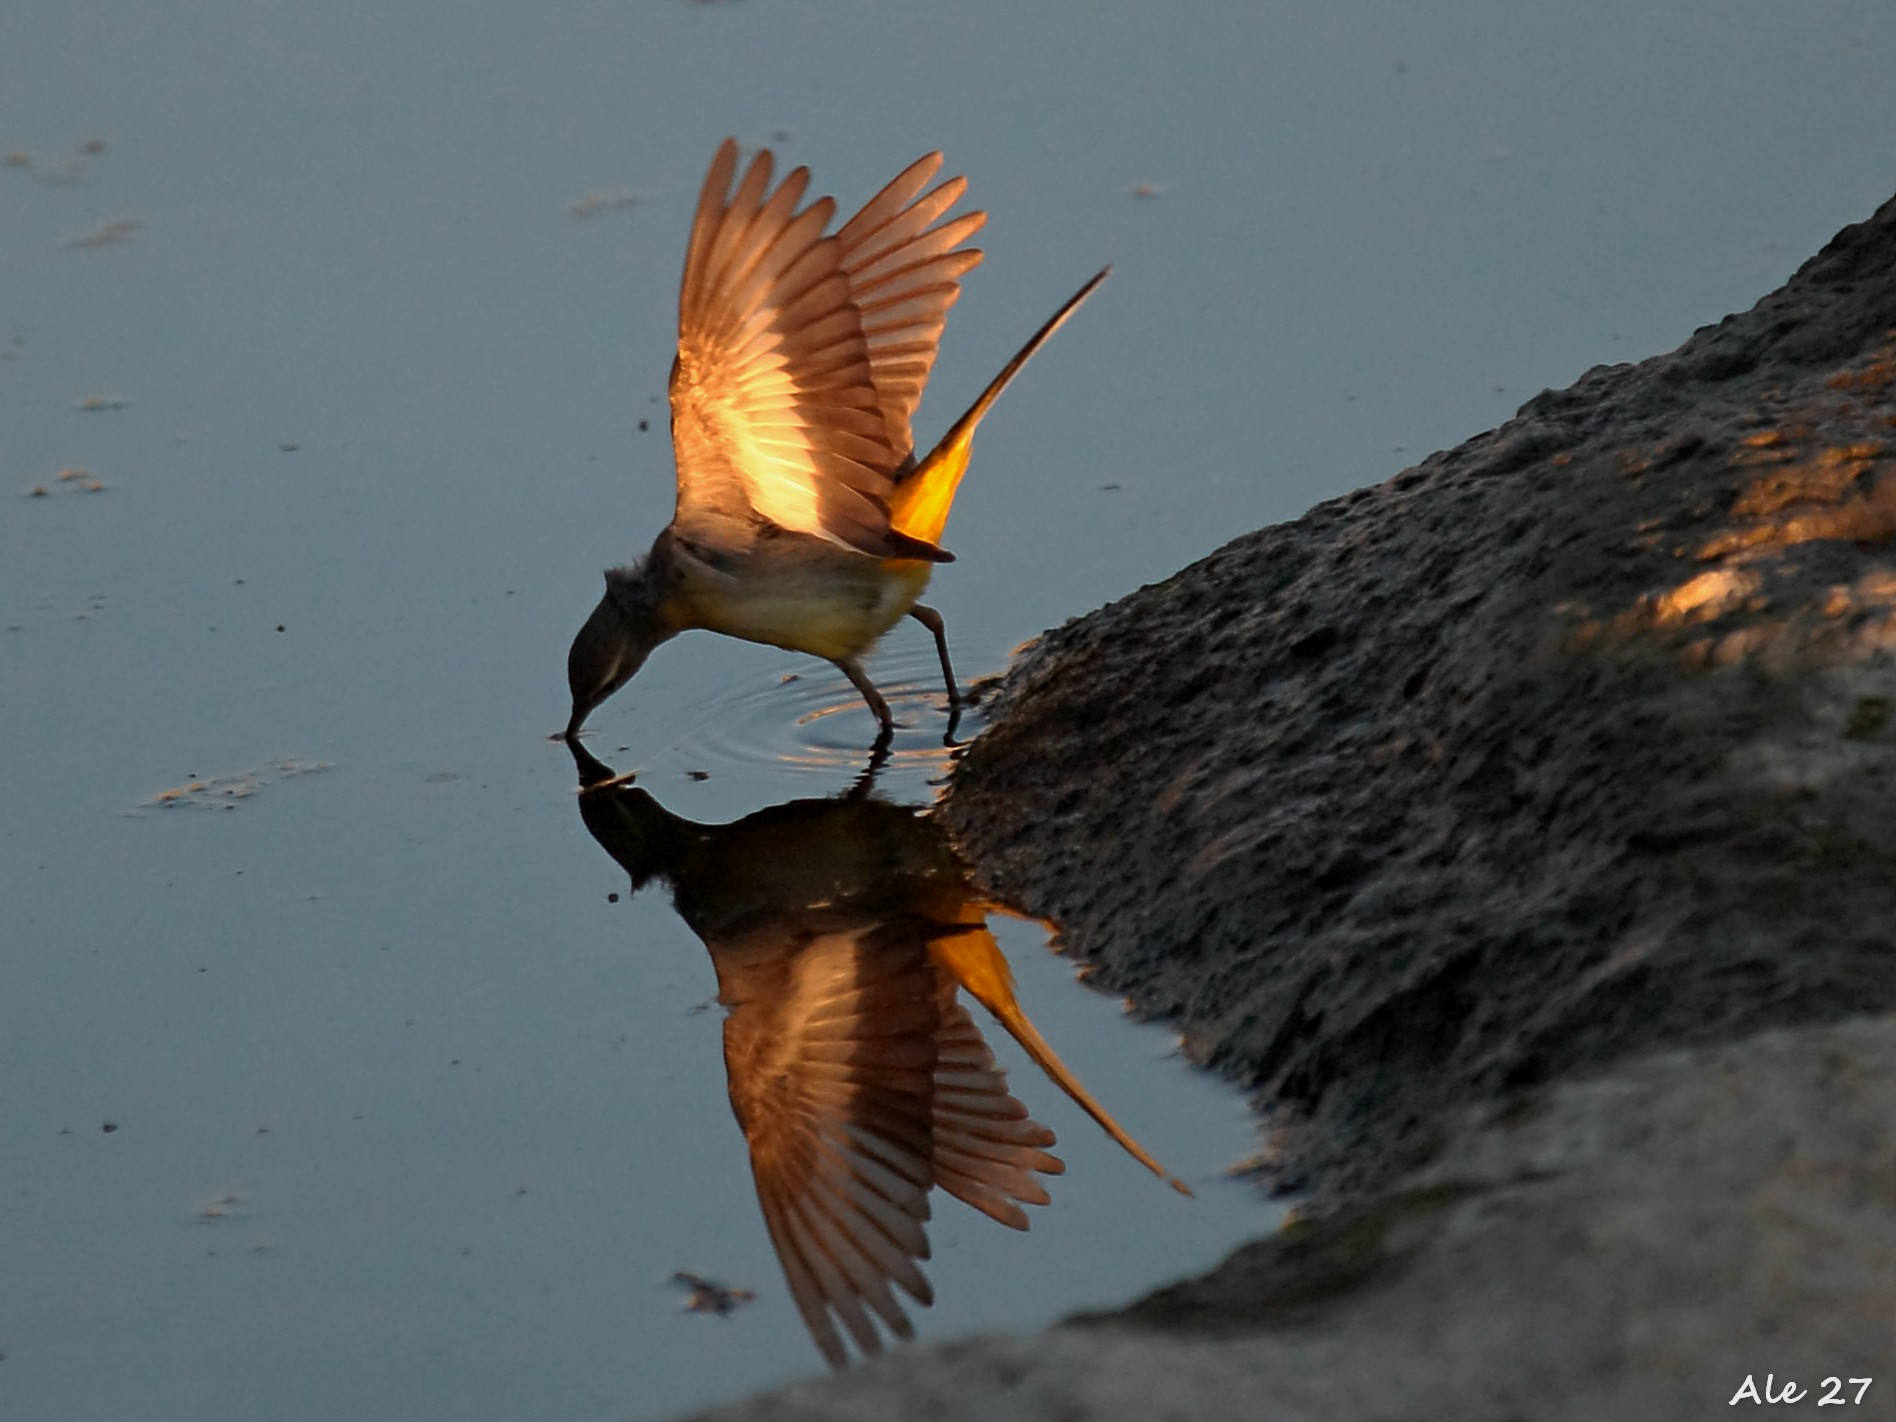 .... With golden wings ......